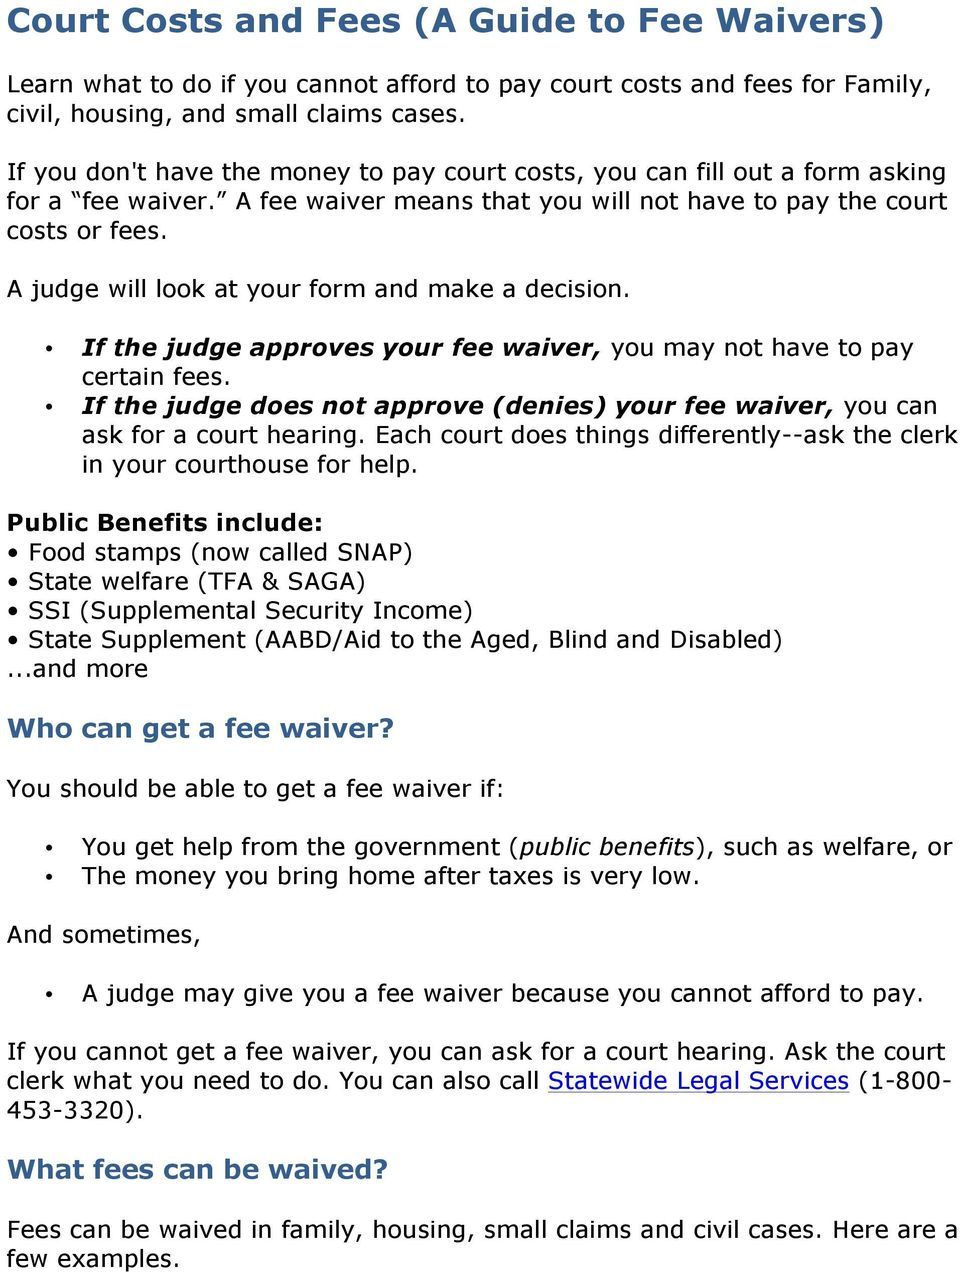 A judge will look at your form and make a decision. If the judge approves your fee waiver, you may not have to pay certain fees.